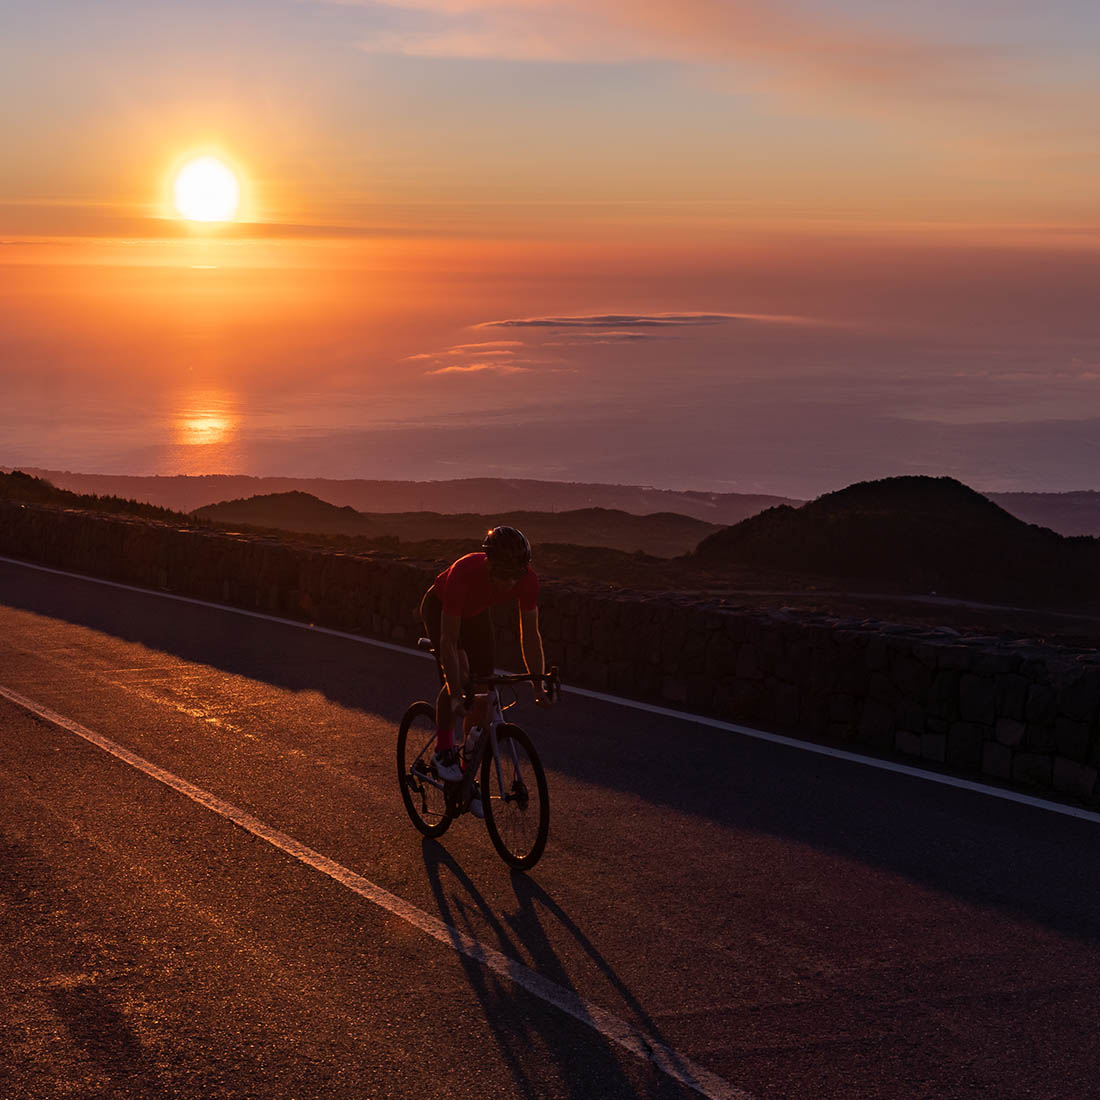 setting sun on Sicily (Etna) and Luxa cyclist on the road